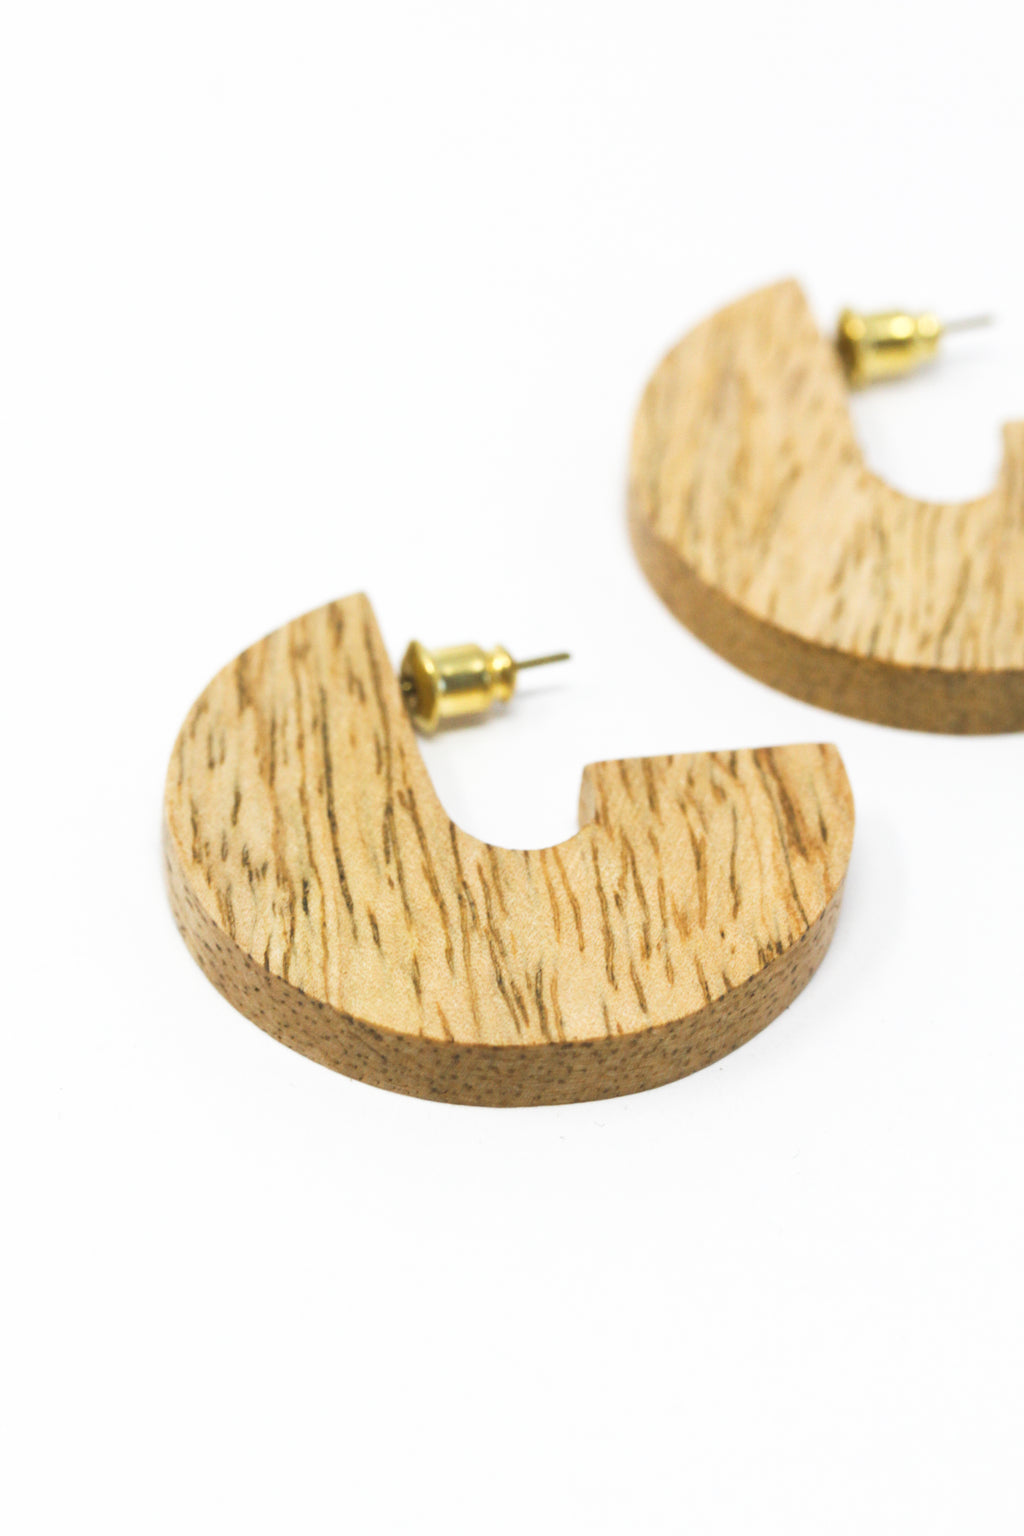 Wood Disc Earrings Small (Mango or Teak)